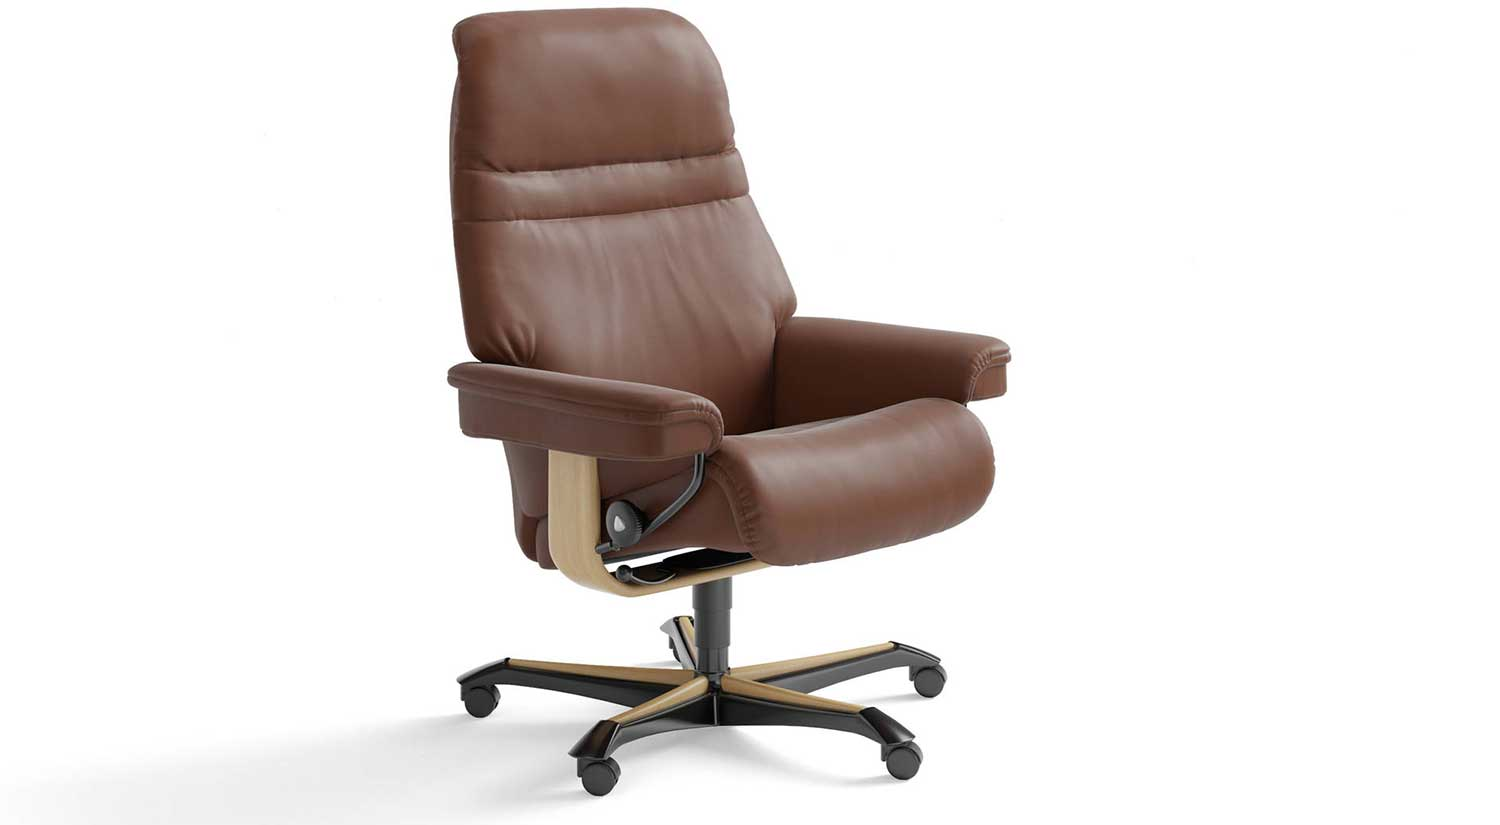 Stressless Office Chair Circle Furniture Stressless Sunrise Office Chair